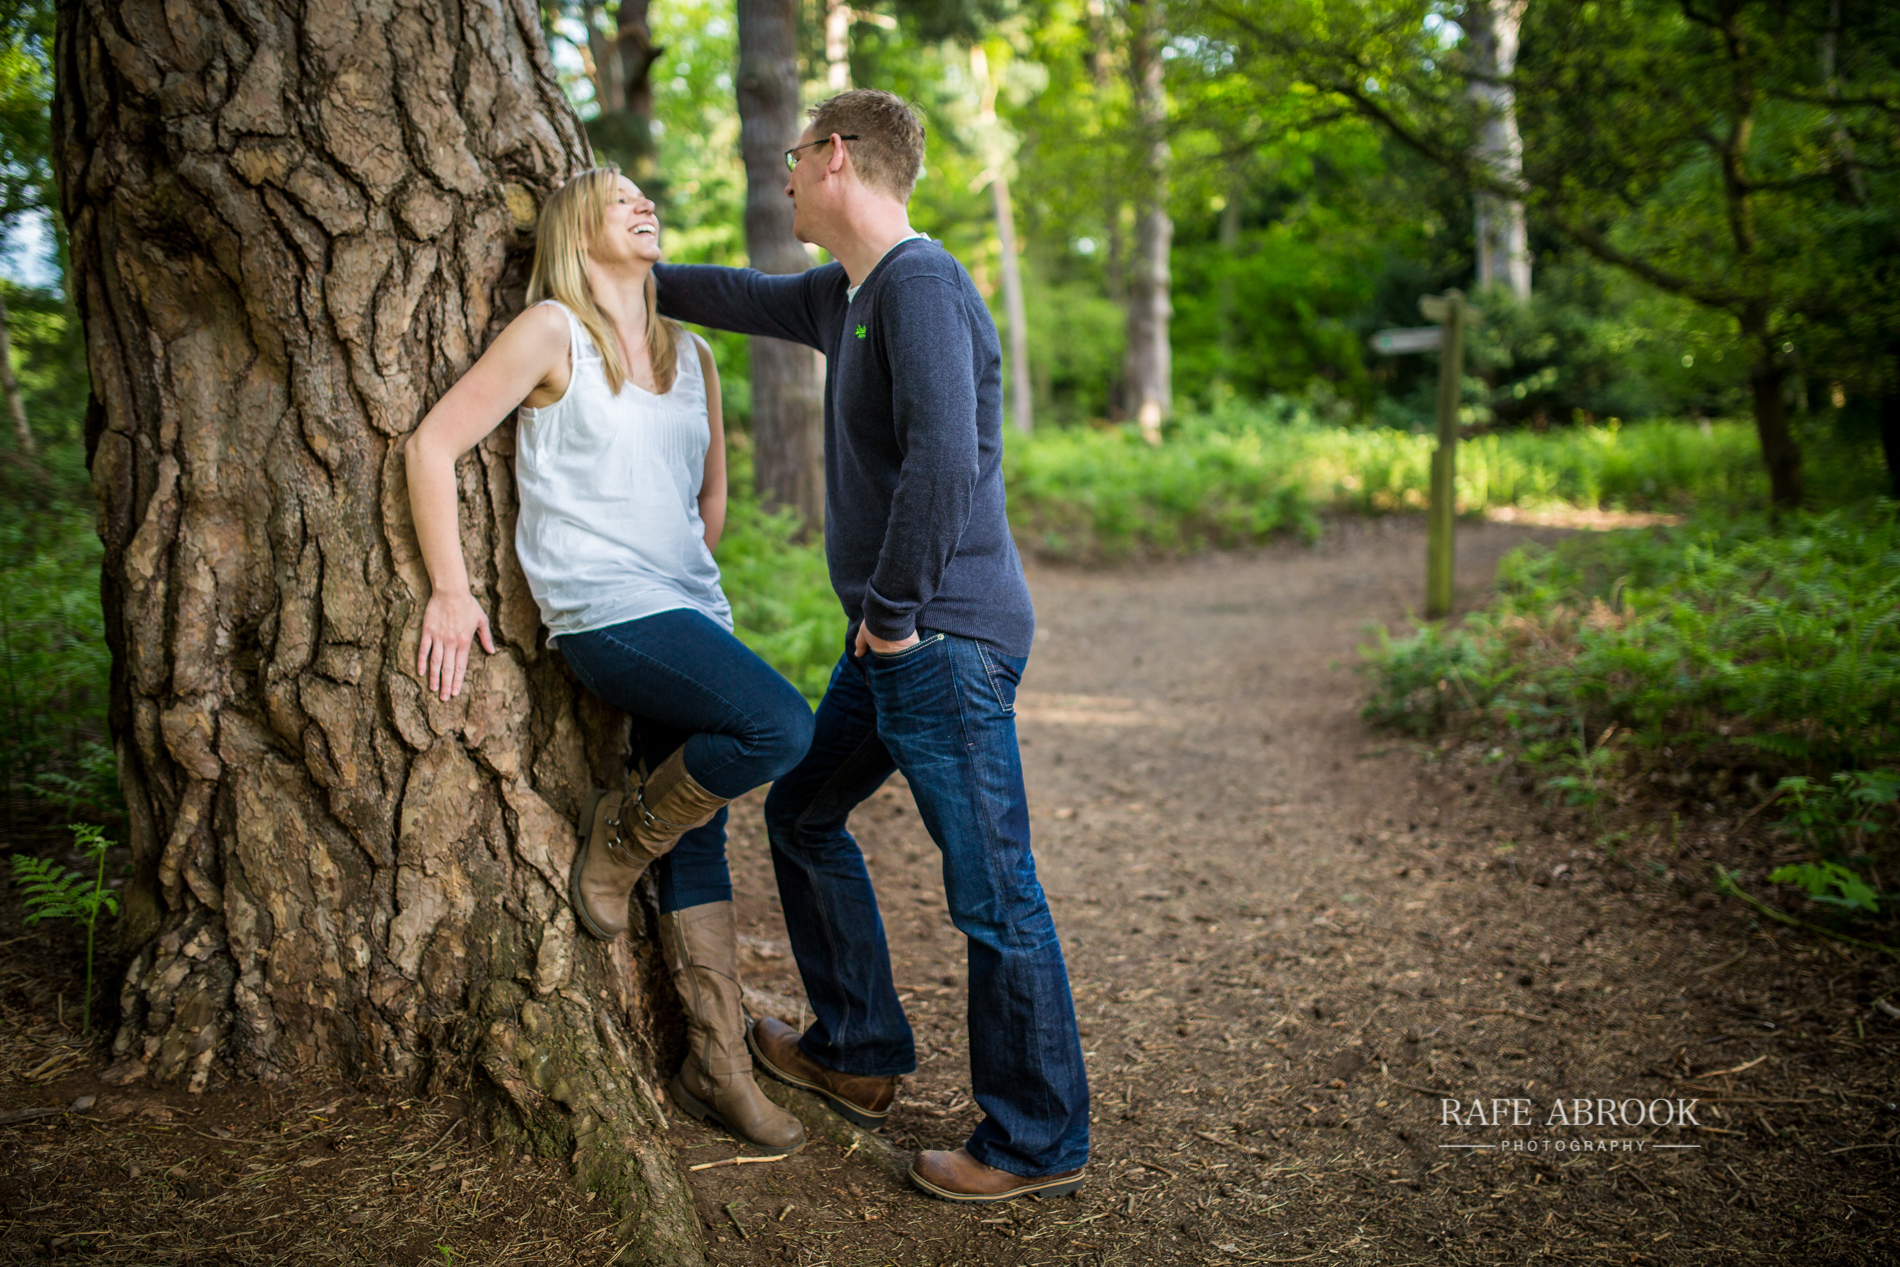 lorna & gary engagement shoot rspb sandy the lodge bedfordshire-1014.jpg